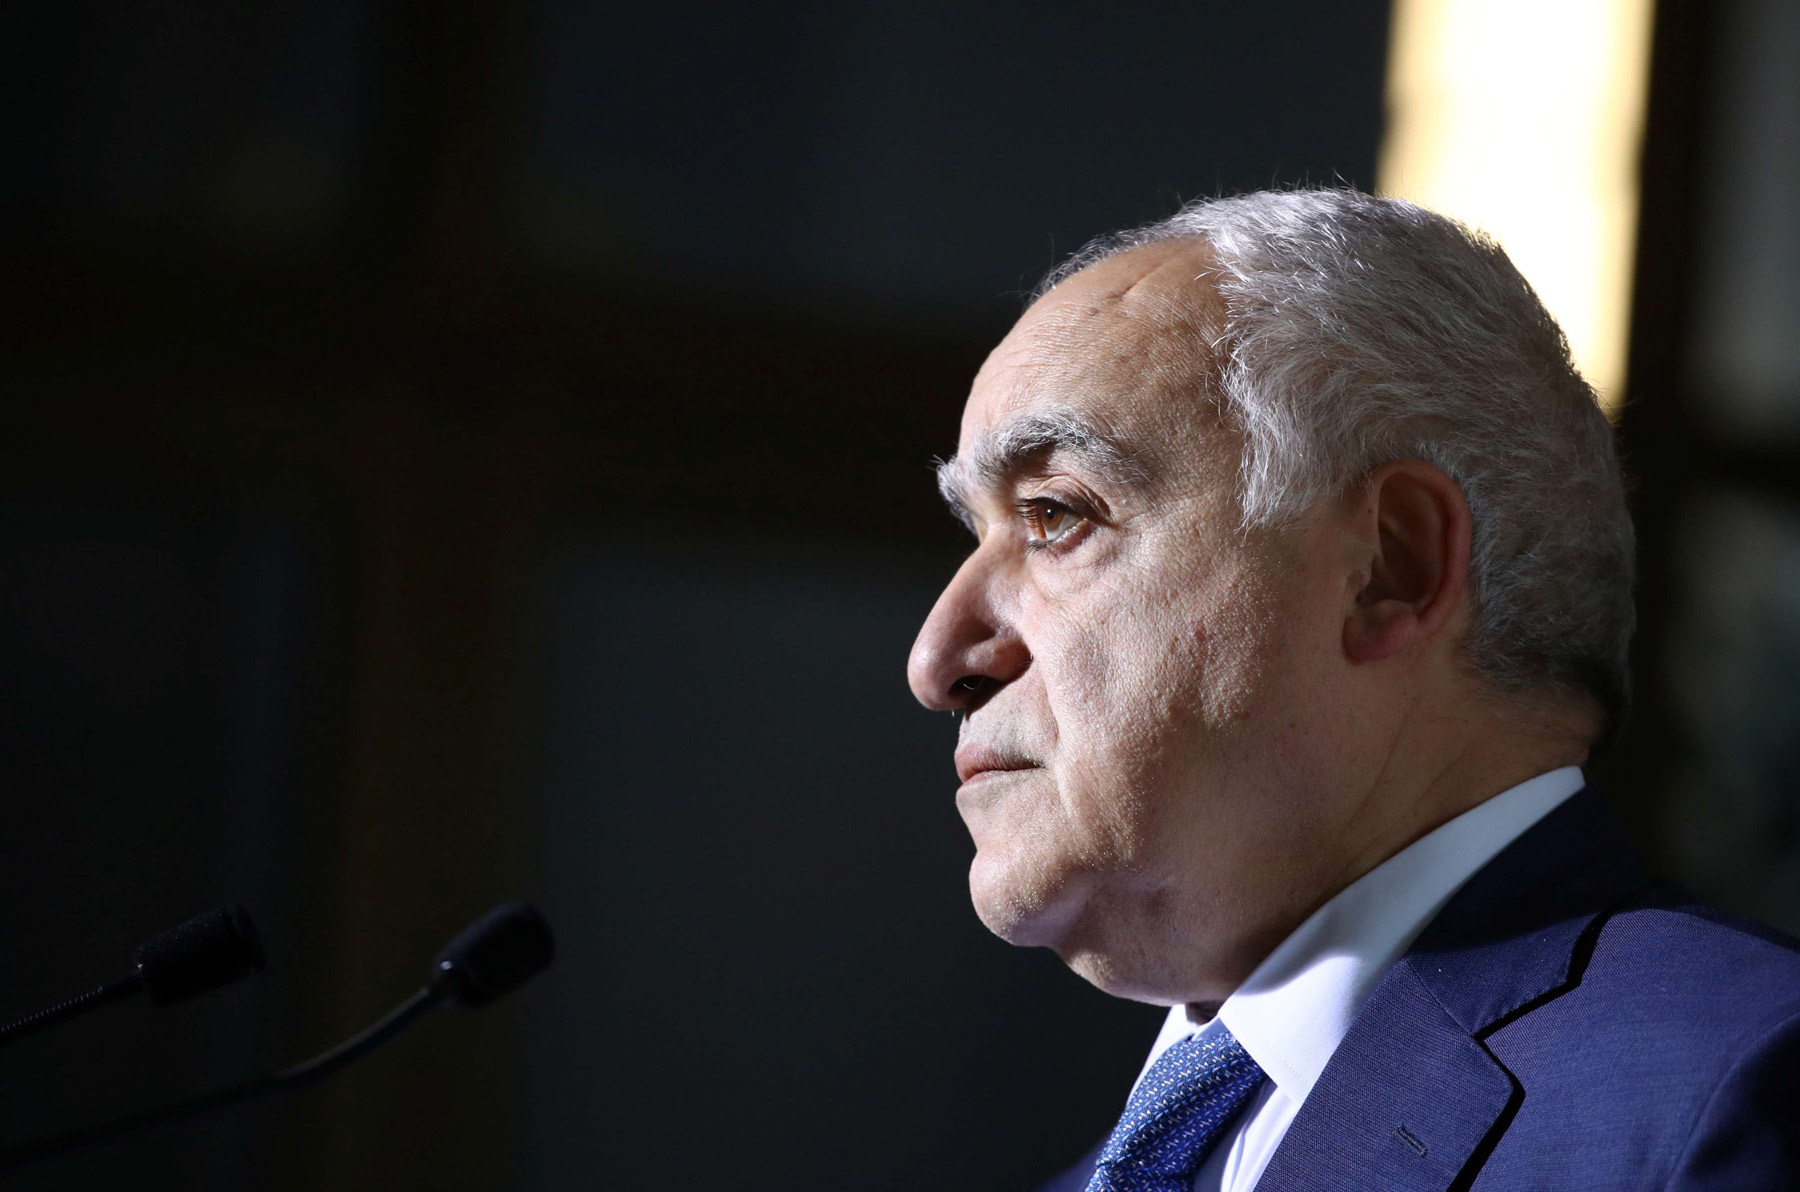 UN Envoy for Libya Ghassan Salame holds a news briefing after a meeting of the 5+5 Libyan Joint Military Commission in Geneva, Switzerland, February 6. (Reuters)